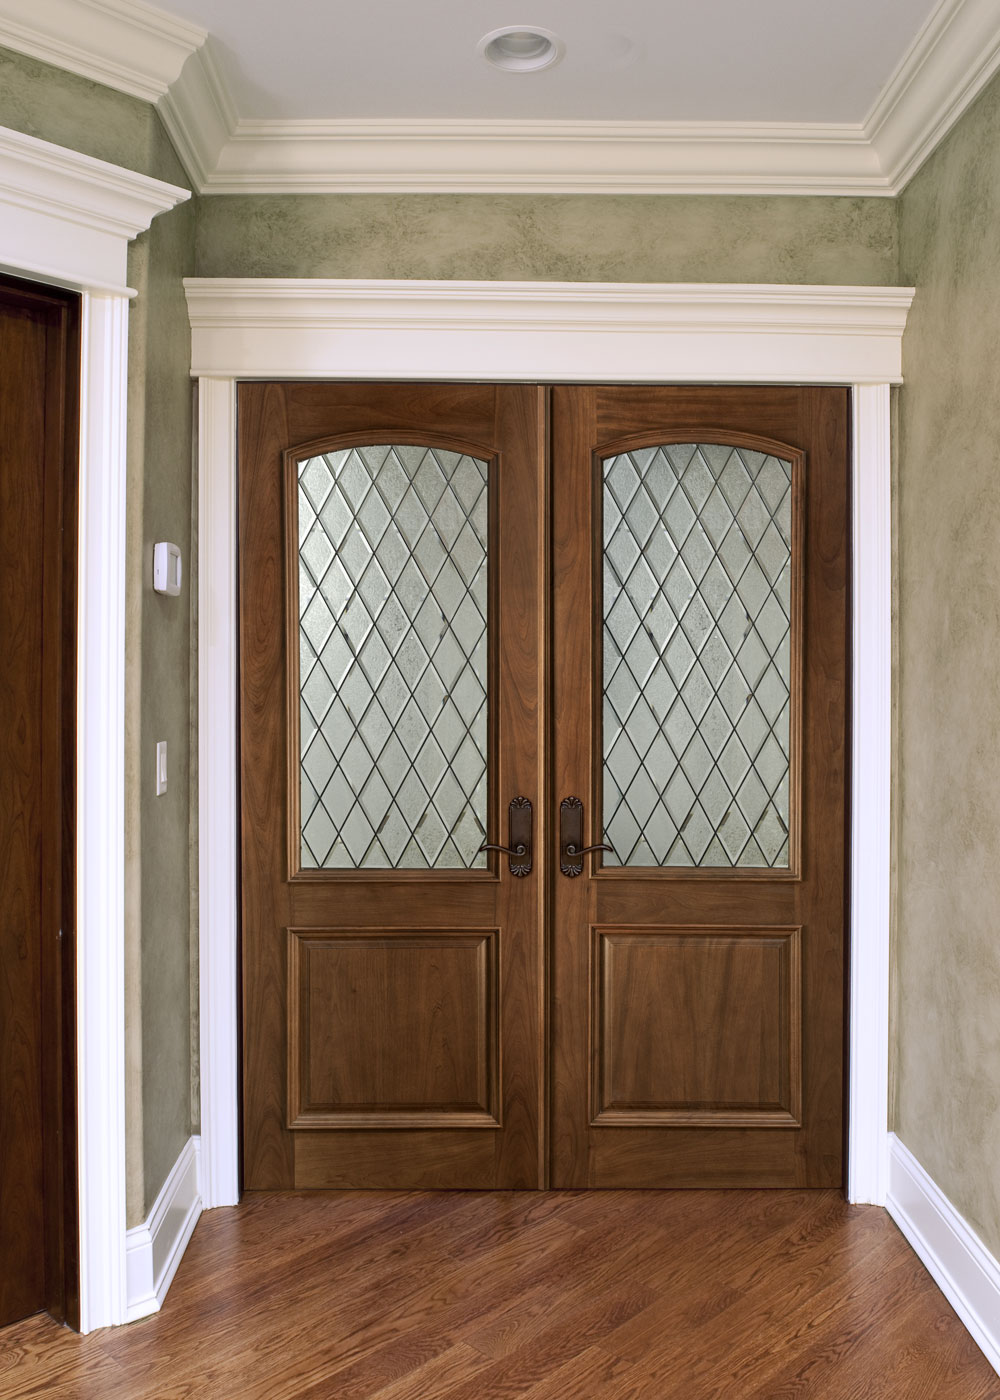 10 benefits of double door designs interior exterior ideas for Interior house doors designs